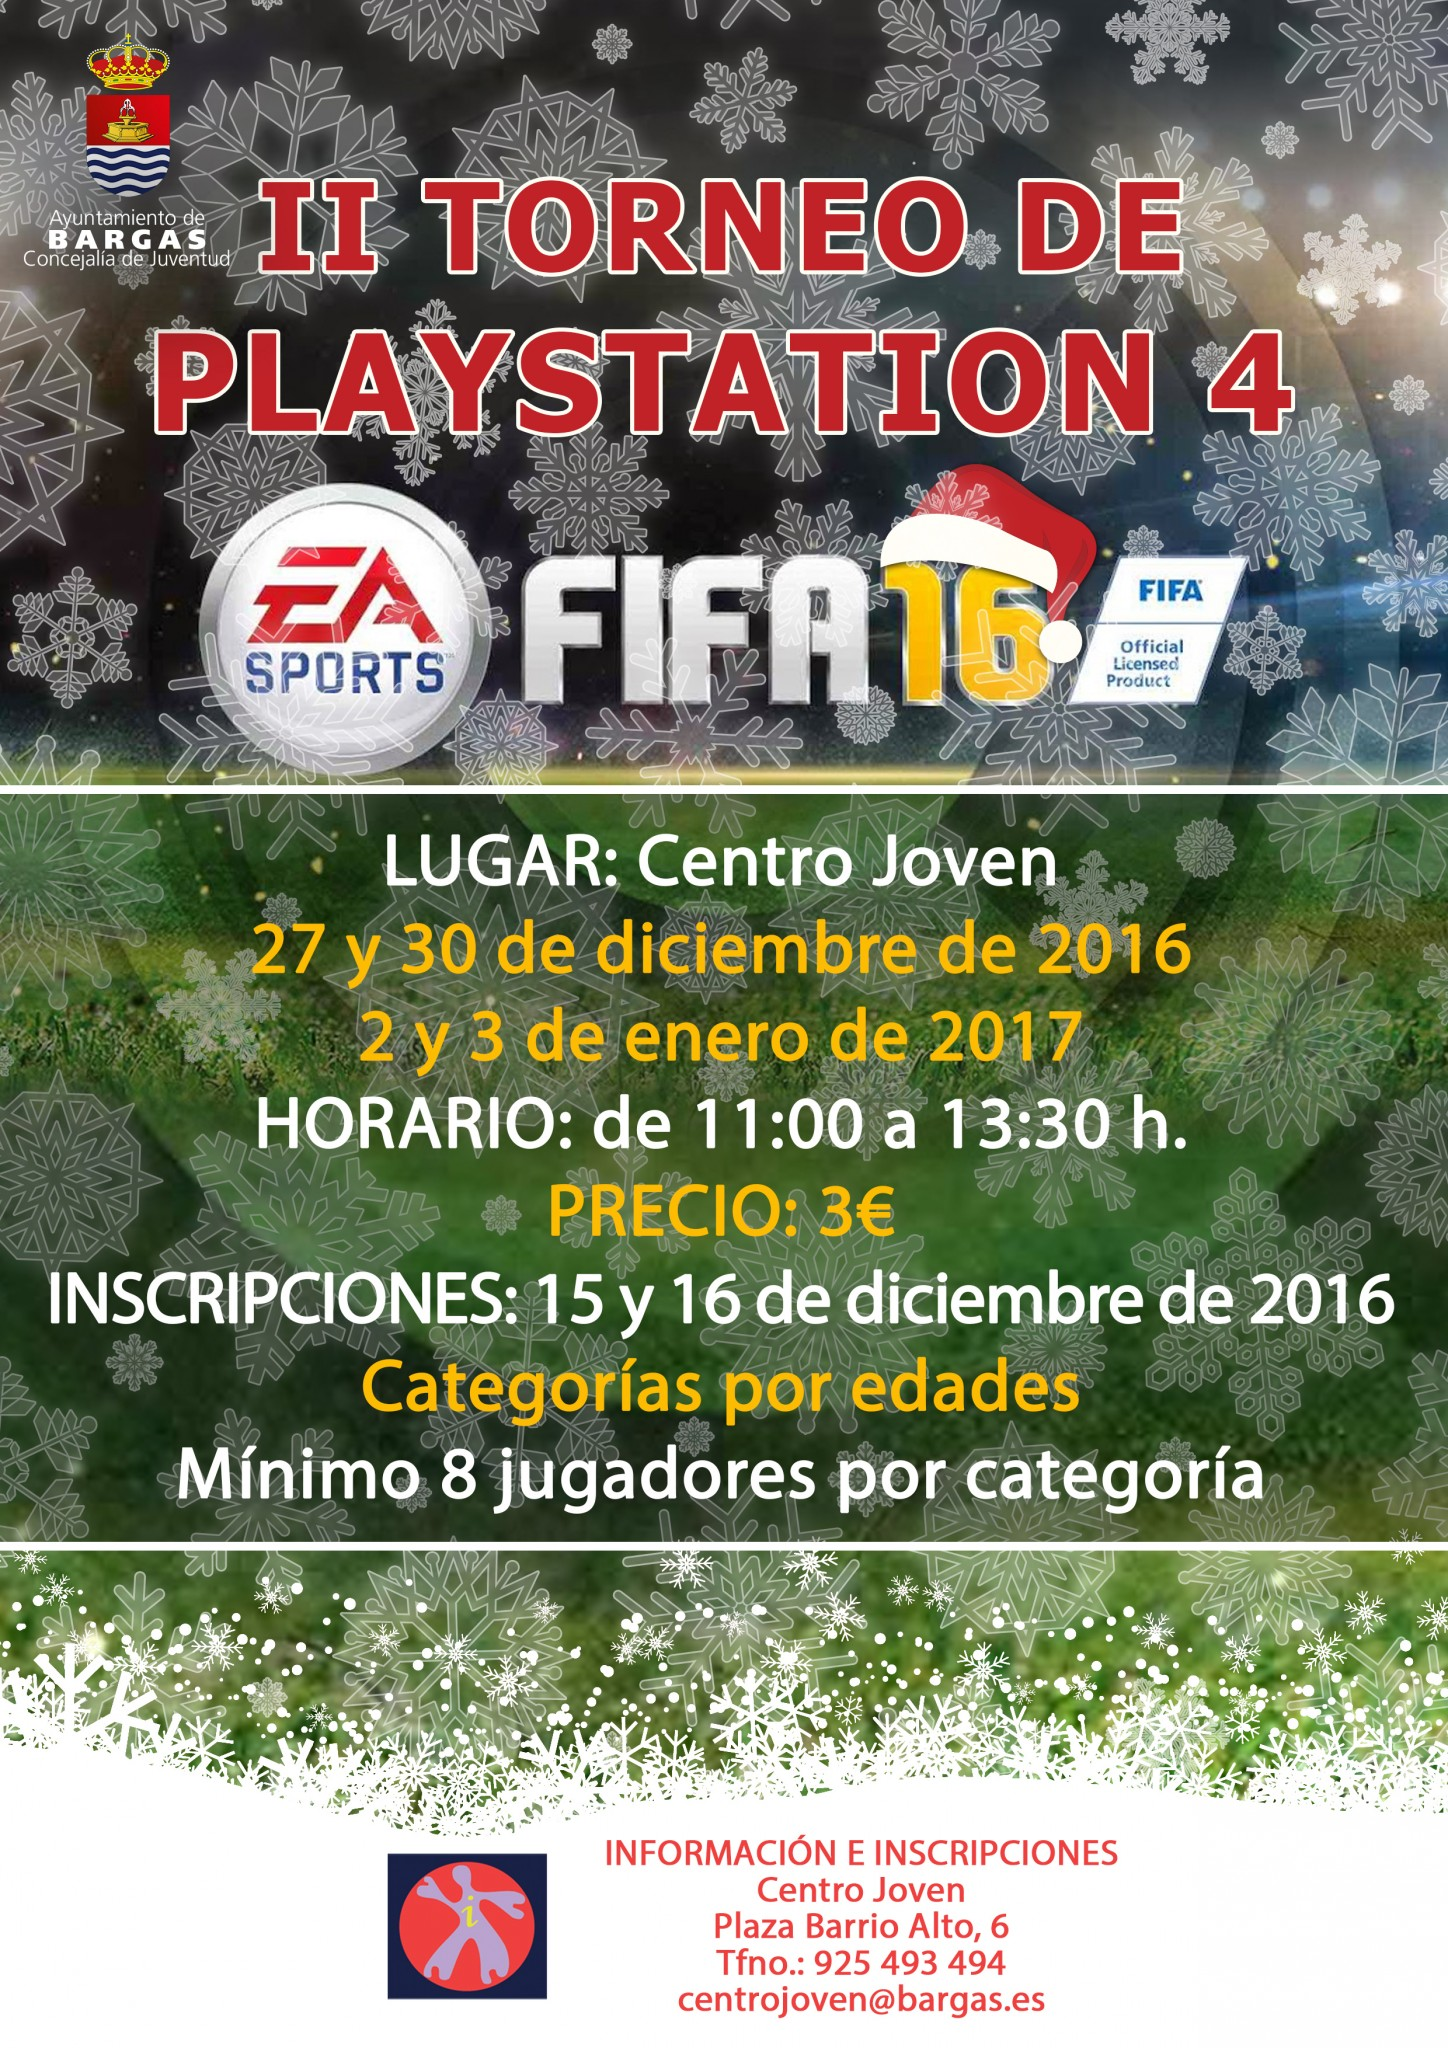 2º Torneo Playstation 4 – FIFA 2016